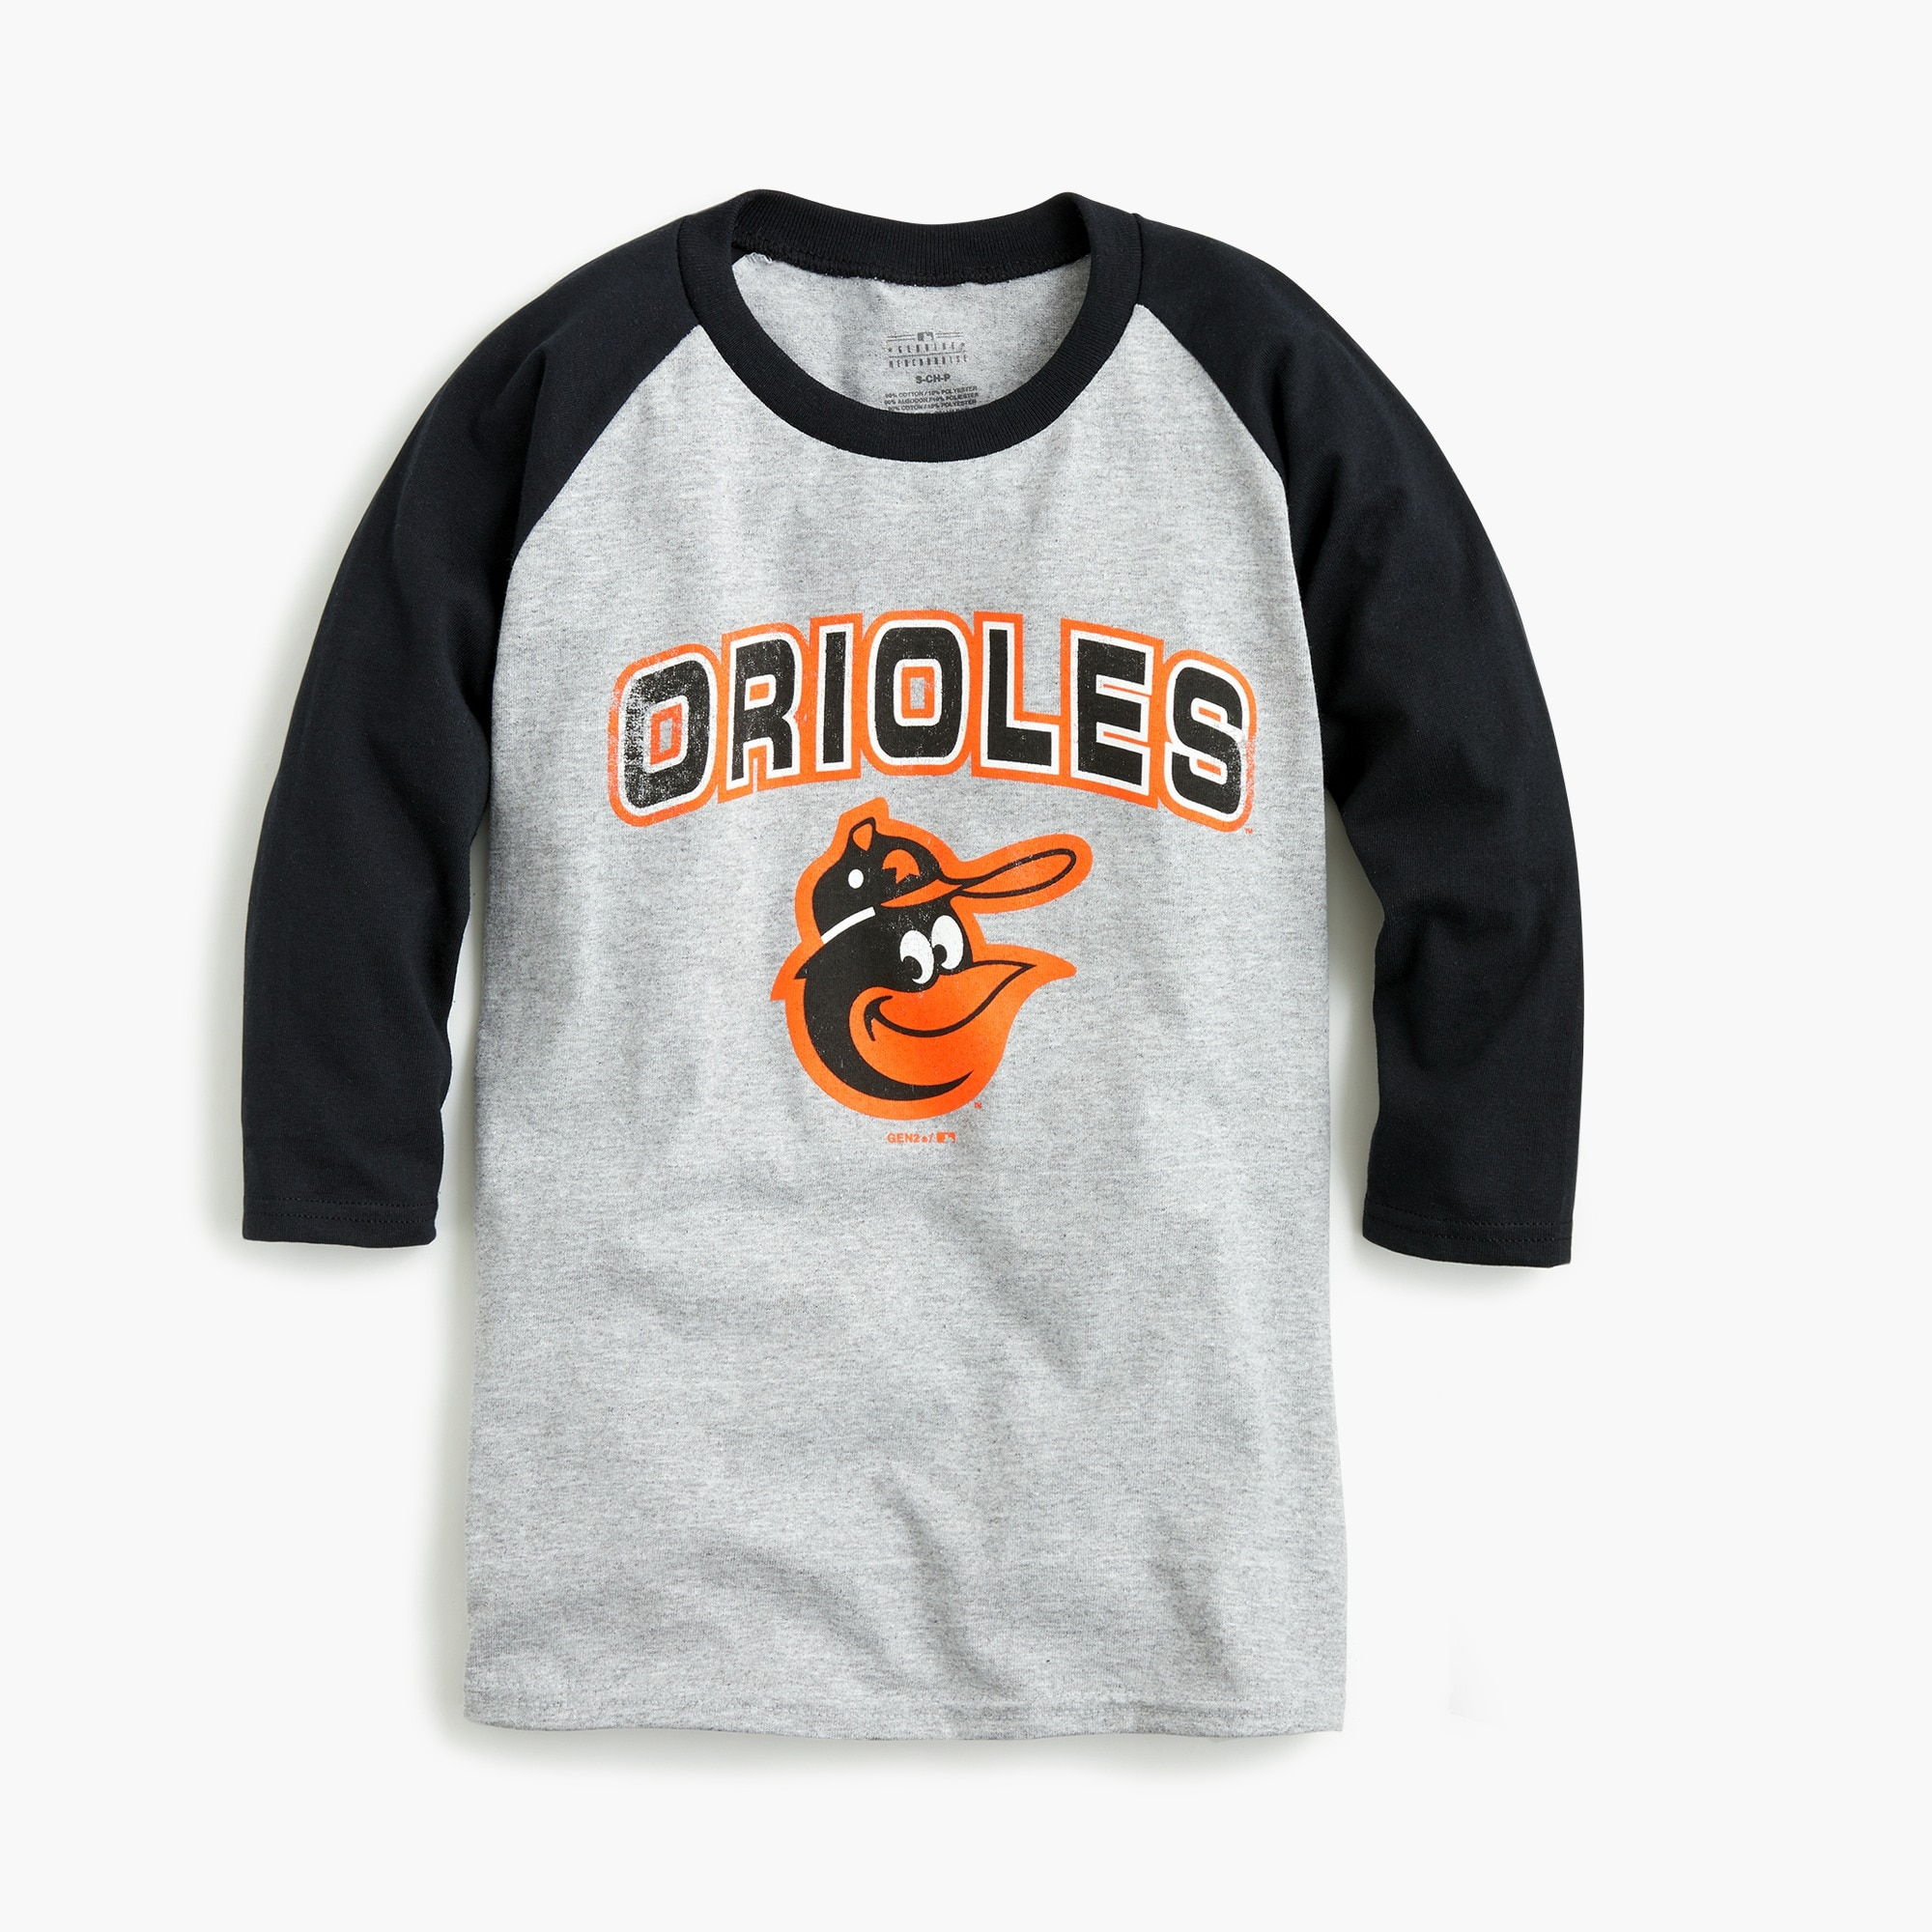 Kids' Baltimore Orioles baseball T-shirt boy new arrivals c